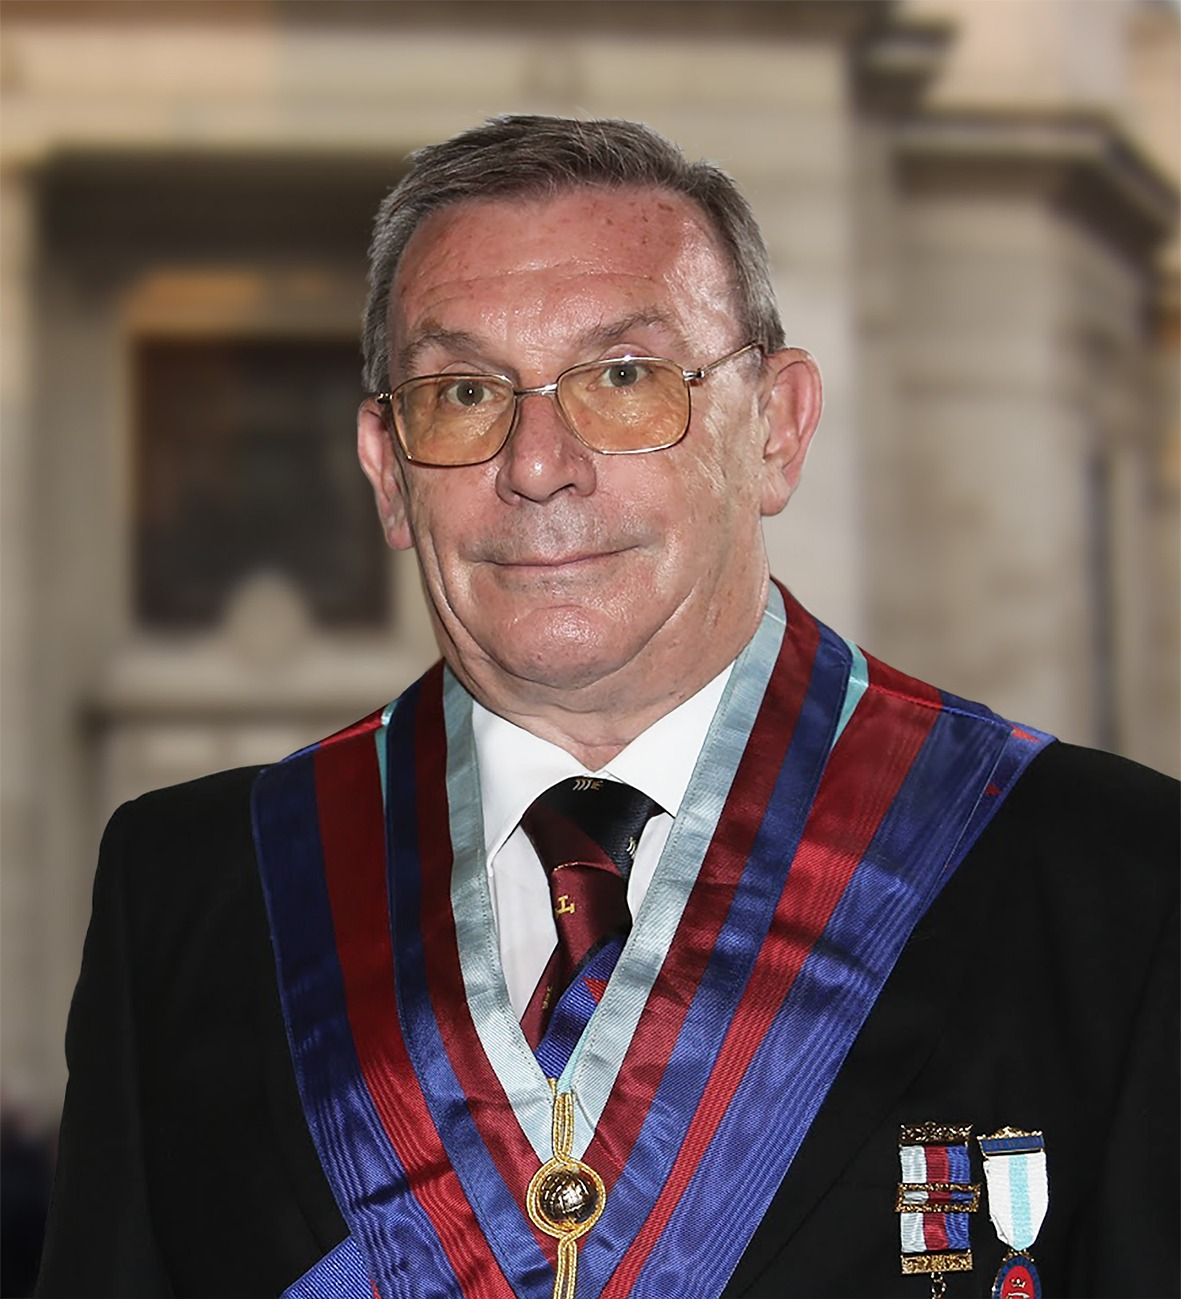 E Comp Peter De Wolfe PGStB<br> Second Provincial Grand Principal<br>Updated Photo Awaited